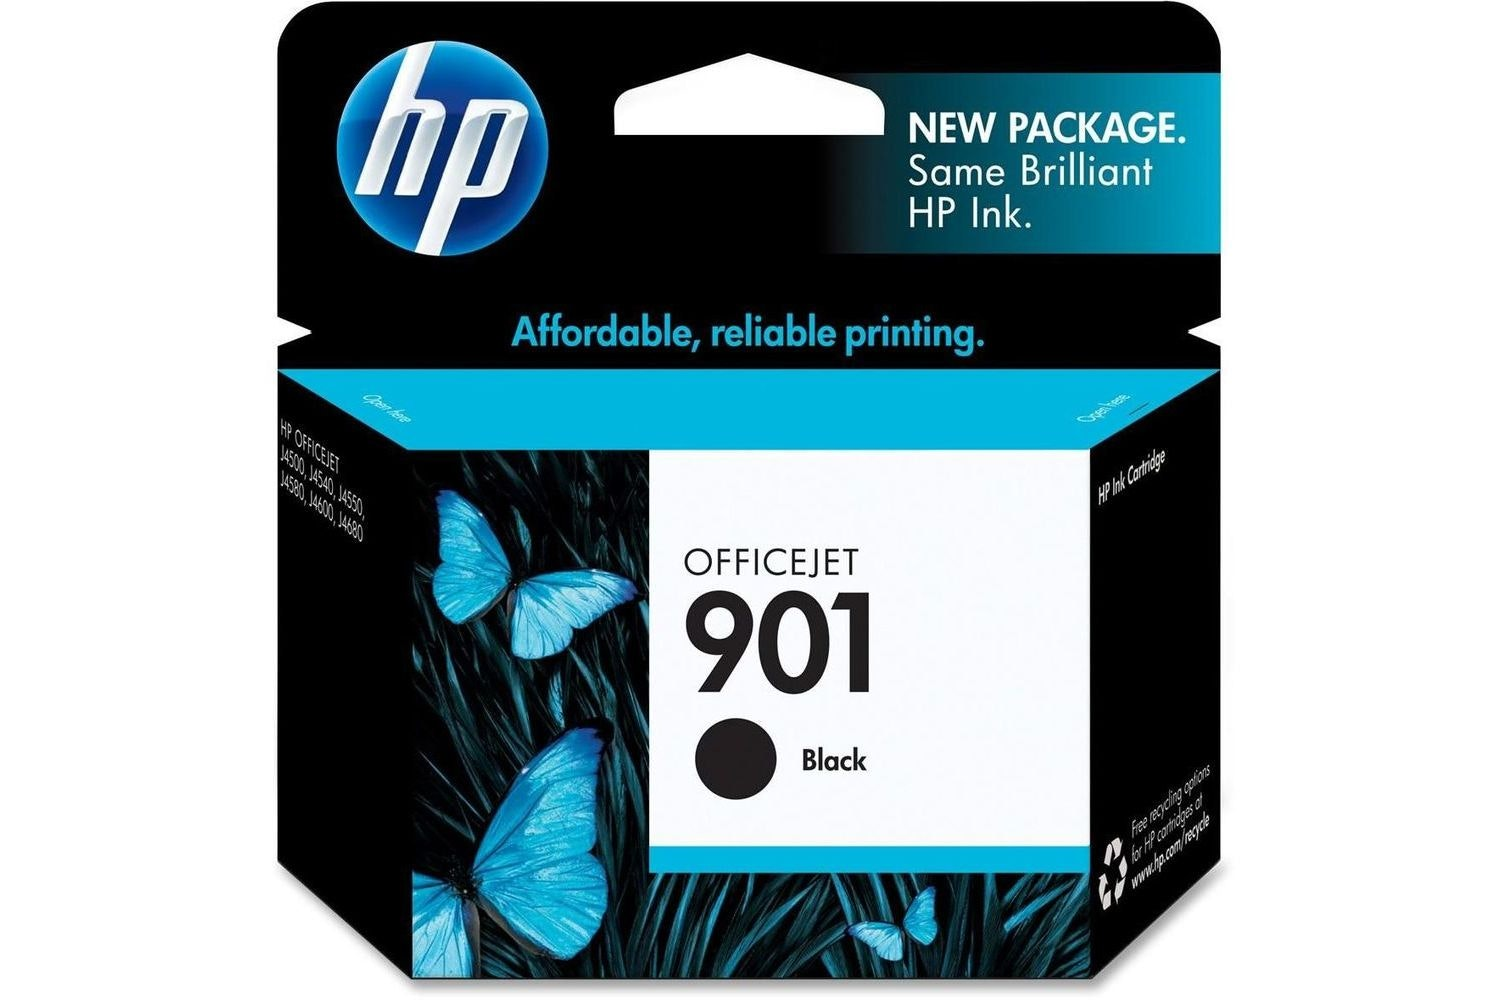 HP 901 Black Ink